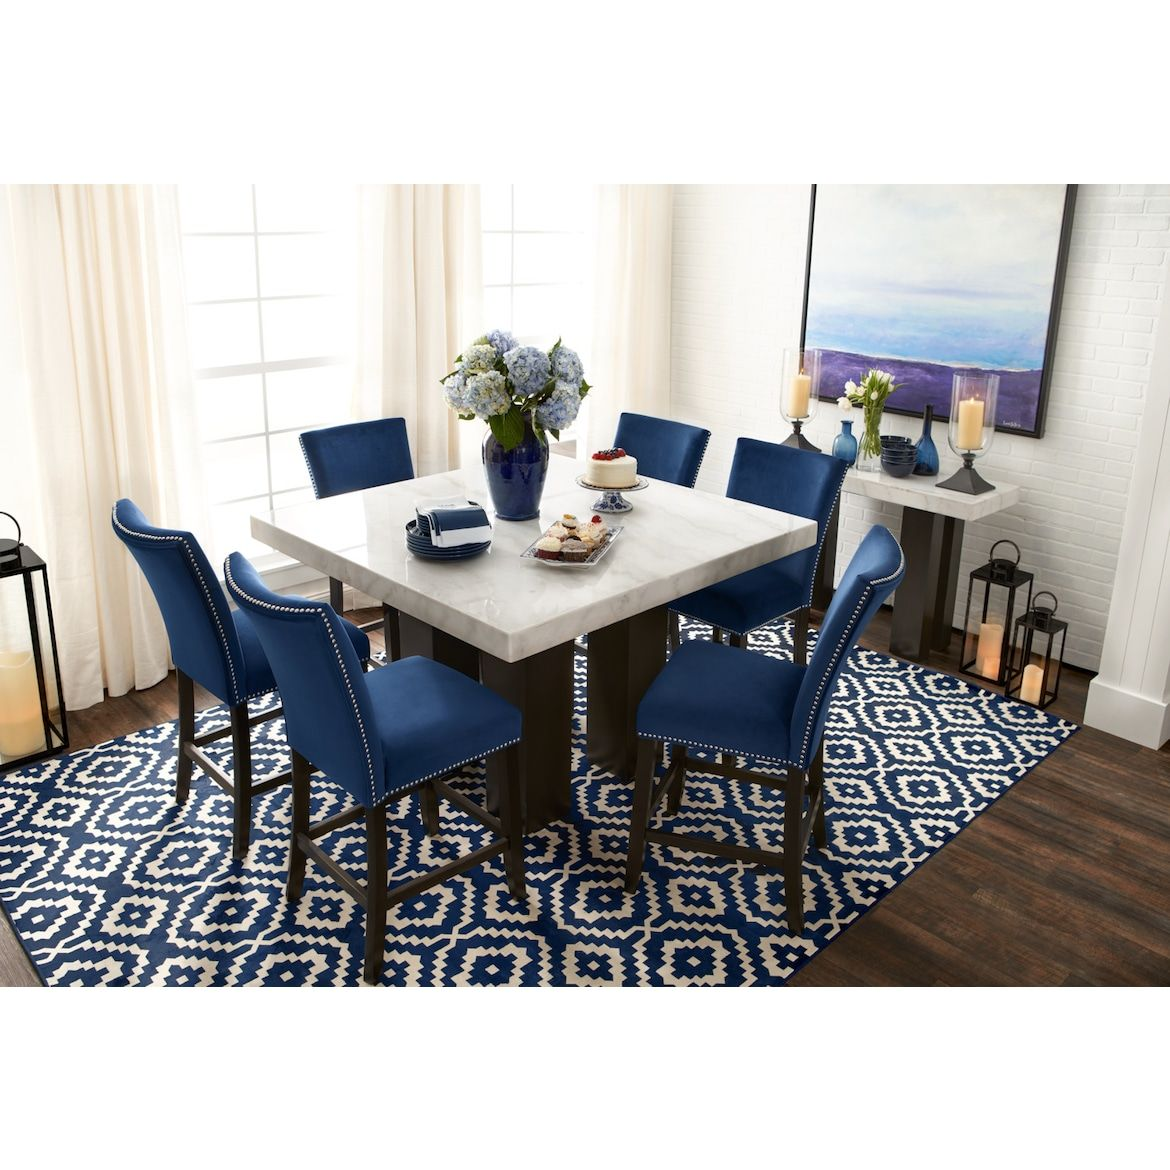 Artemis Counter Height Upholstered Stool Blue Value City